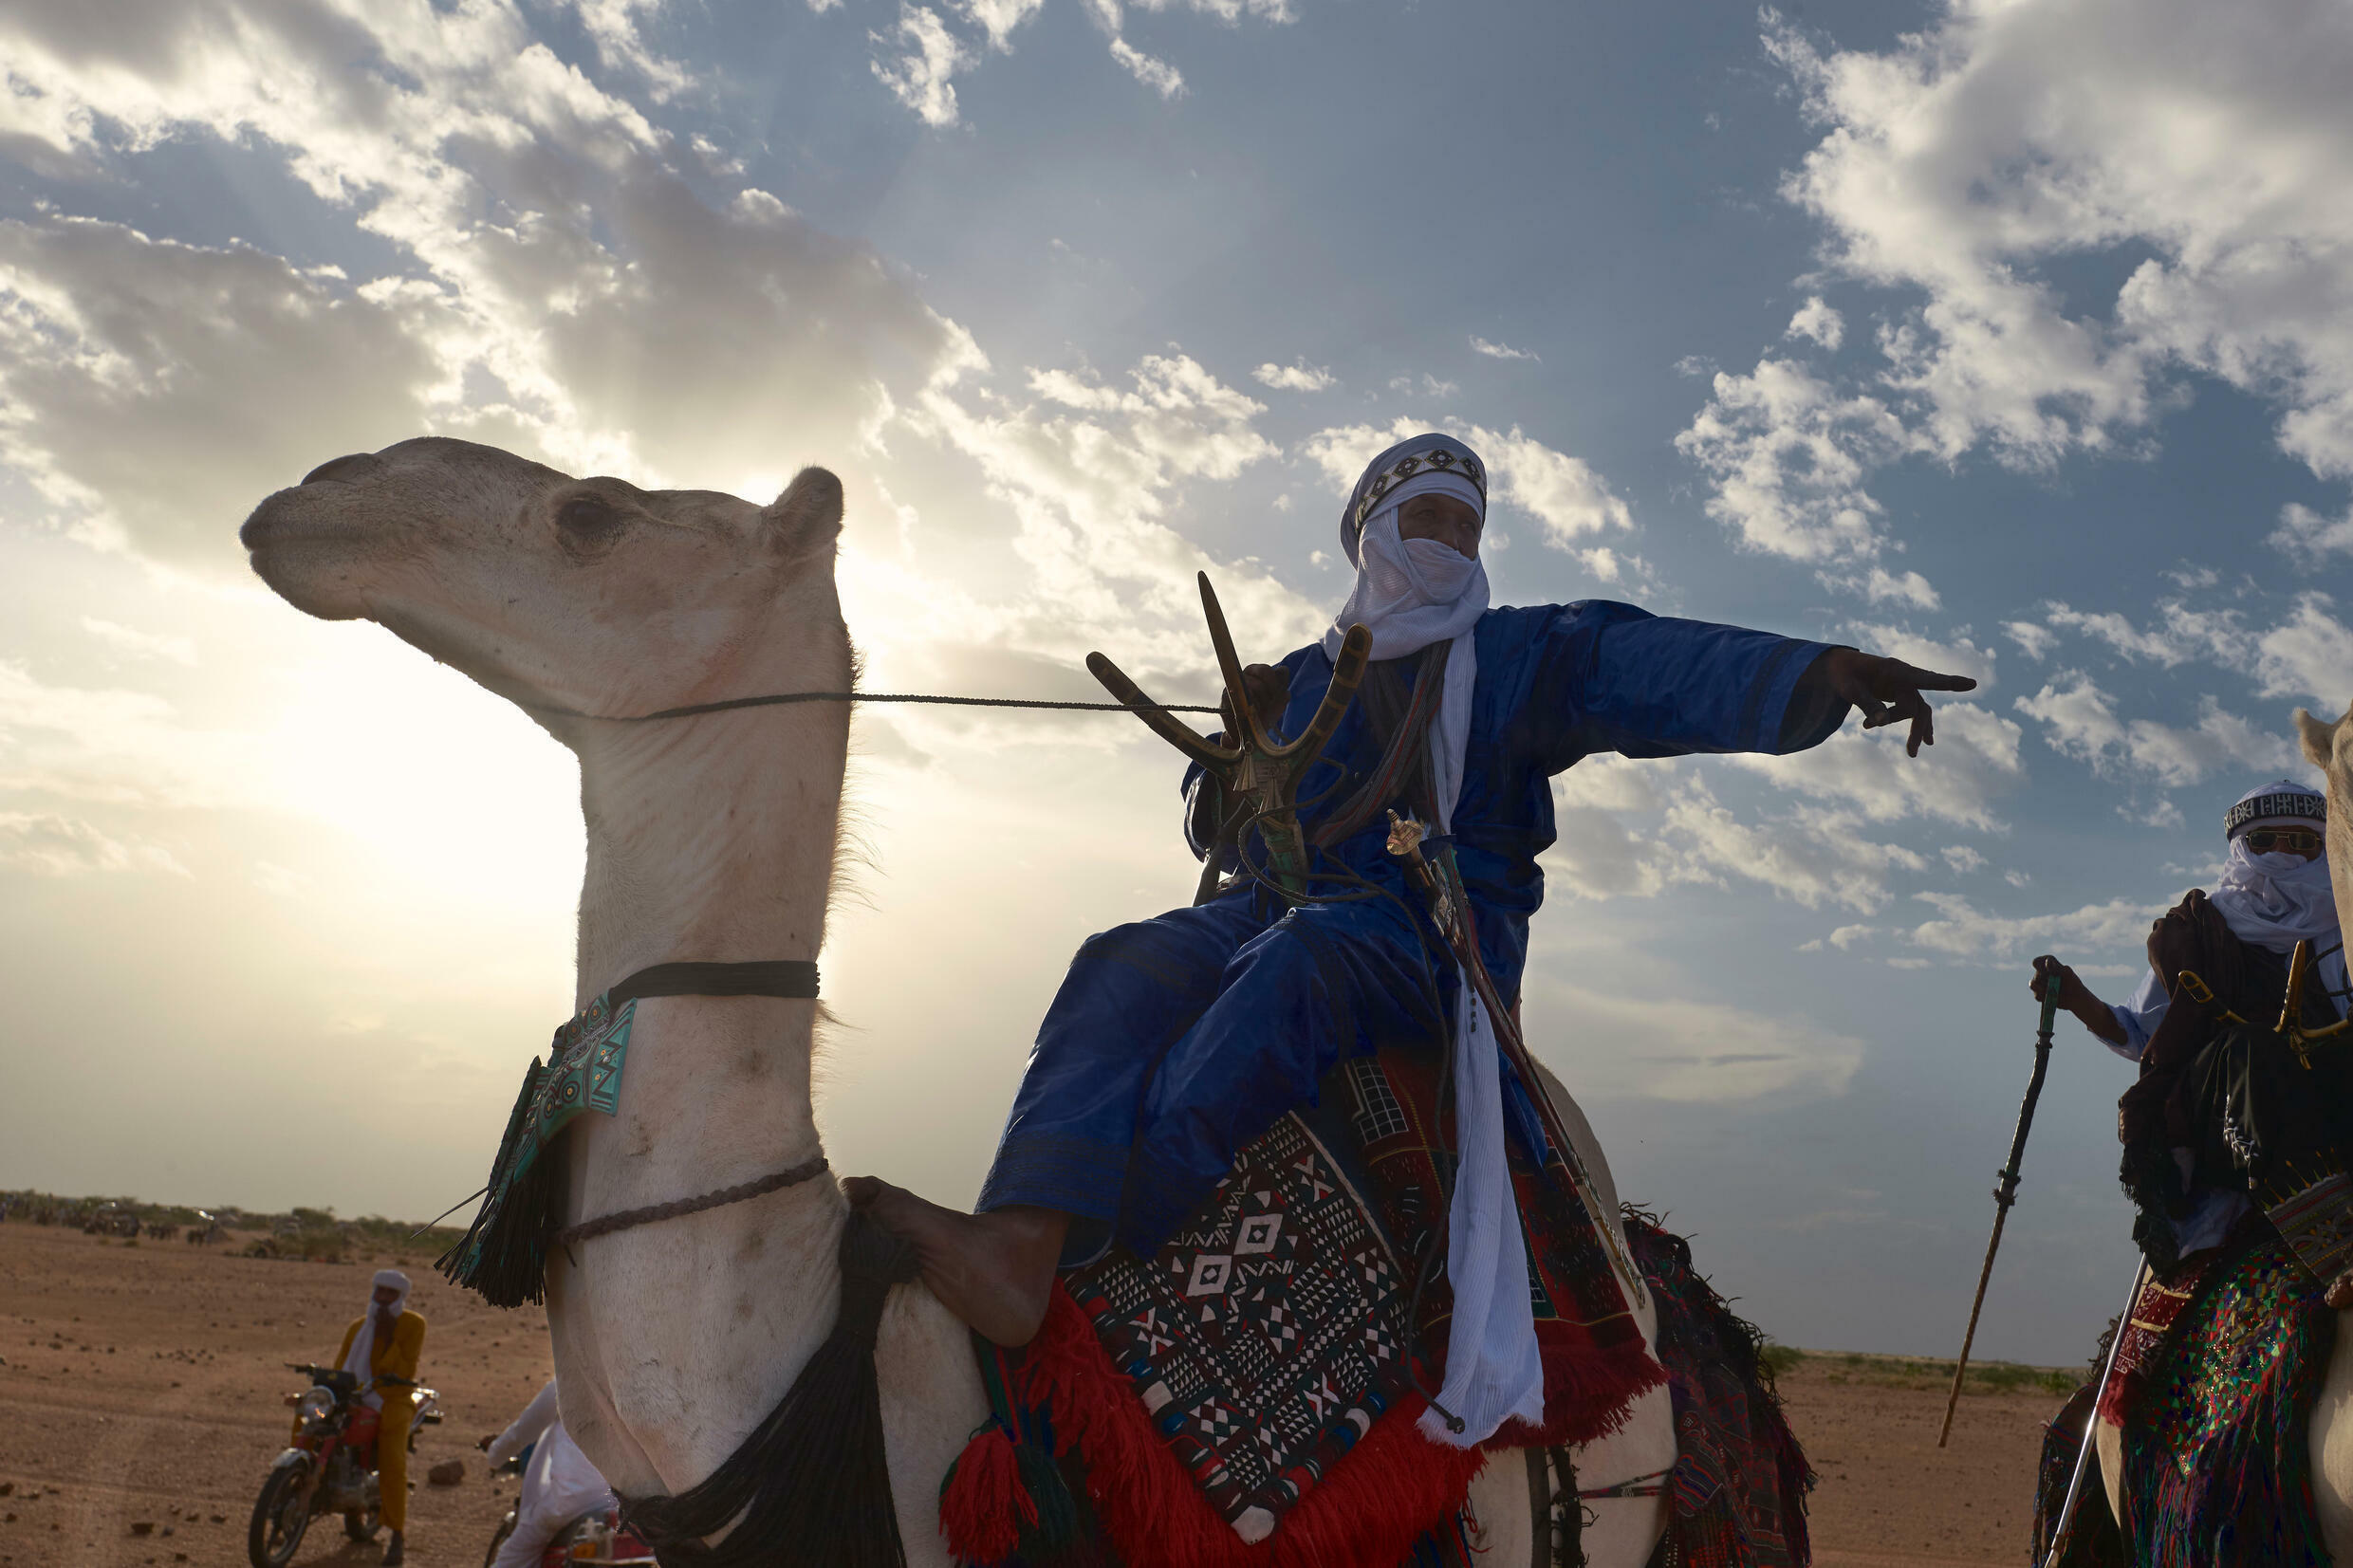 Nomads converge on the oasis town of Ingall to mark the end of the rainy season